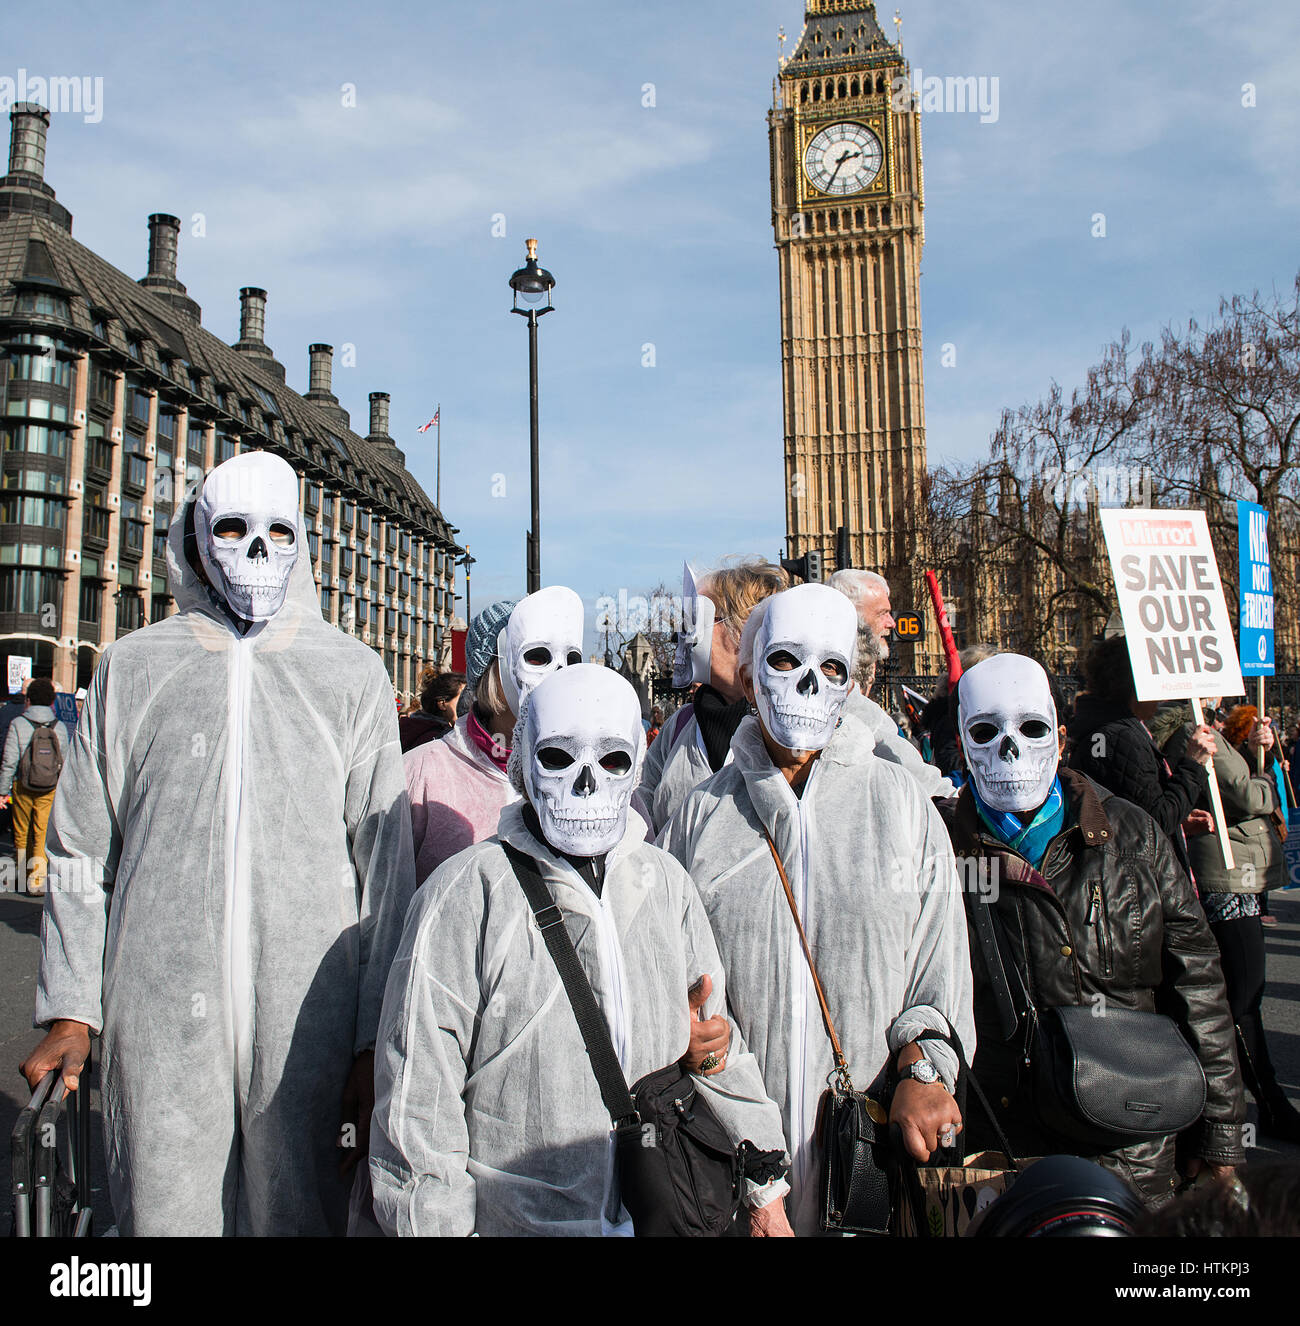 # OUR NHS rally - Thousands turn out for the national demonstration in central London, to defend the NHS against - Stock Image